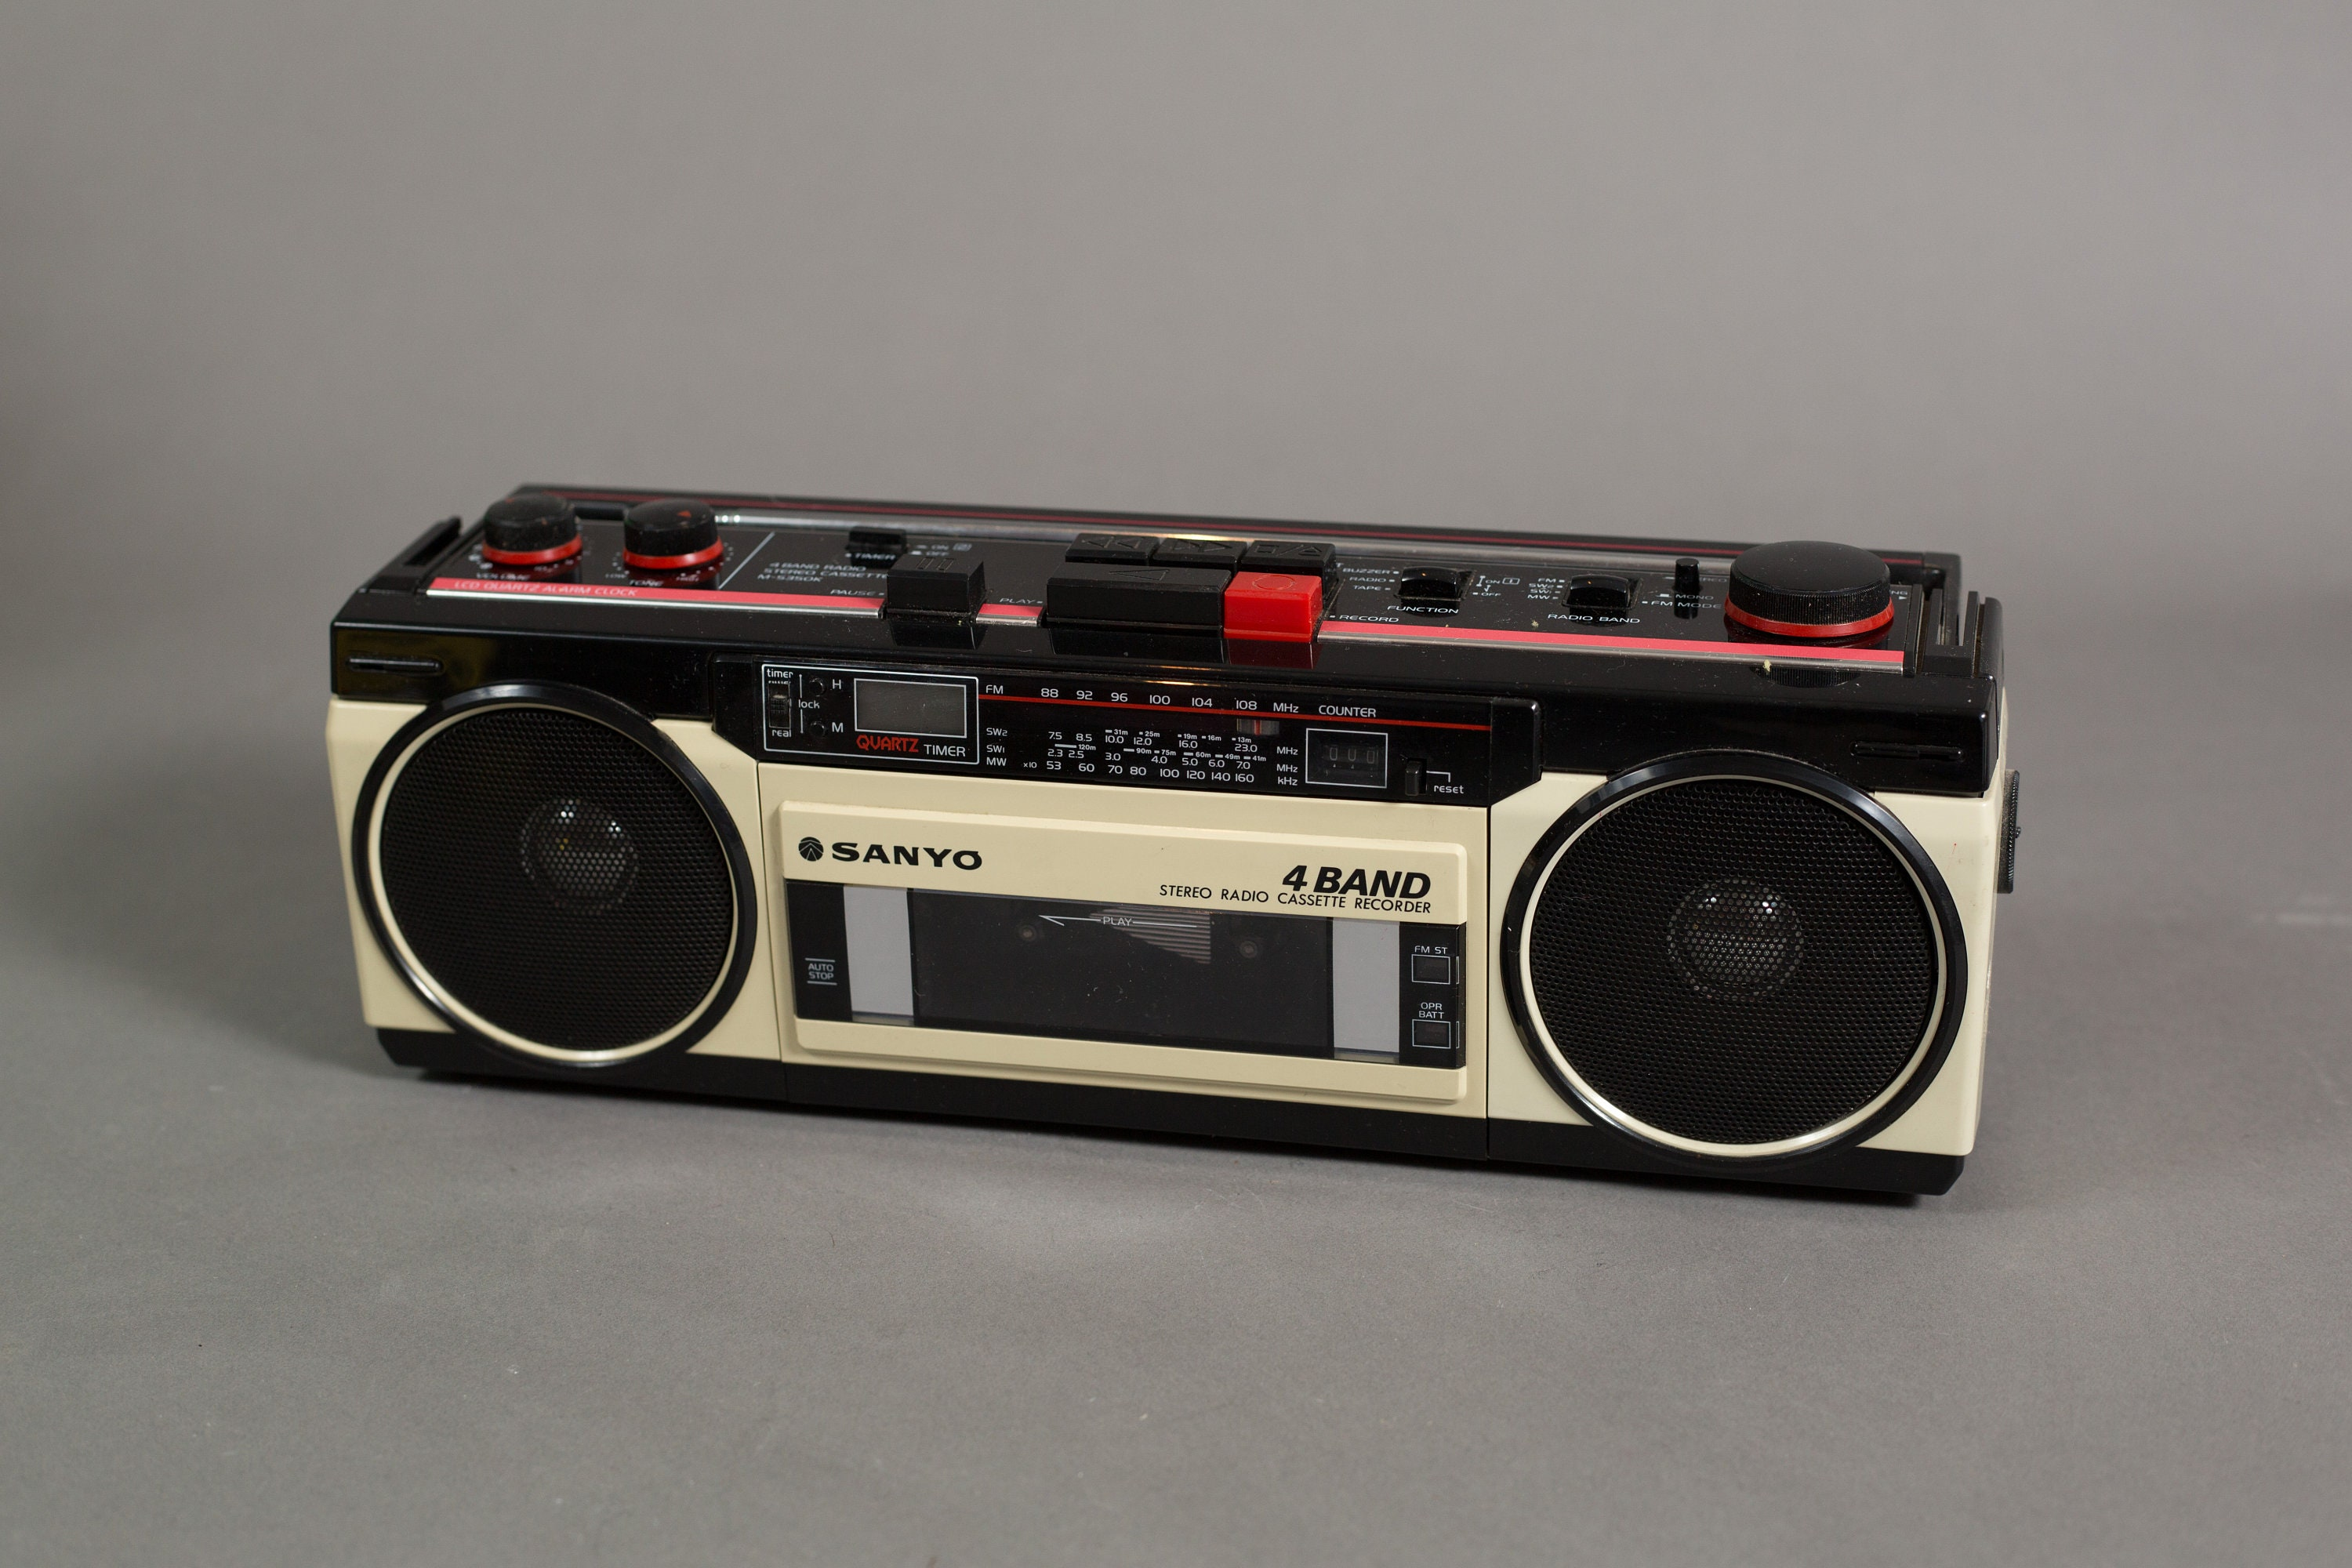 Vintage Sanyo Stereo Radio Cassette Recorder - 4 Band AM/FM Stereo